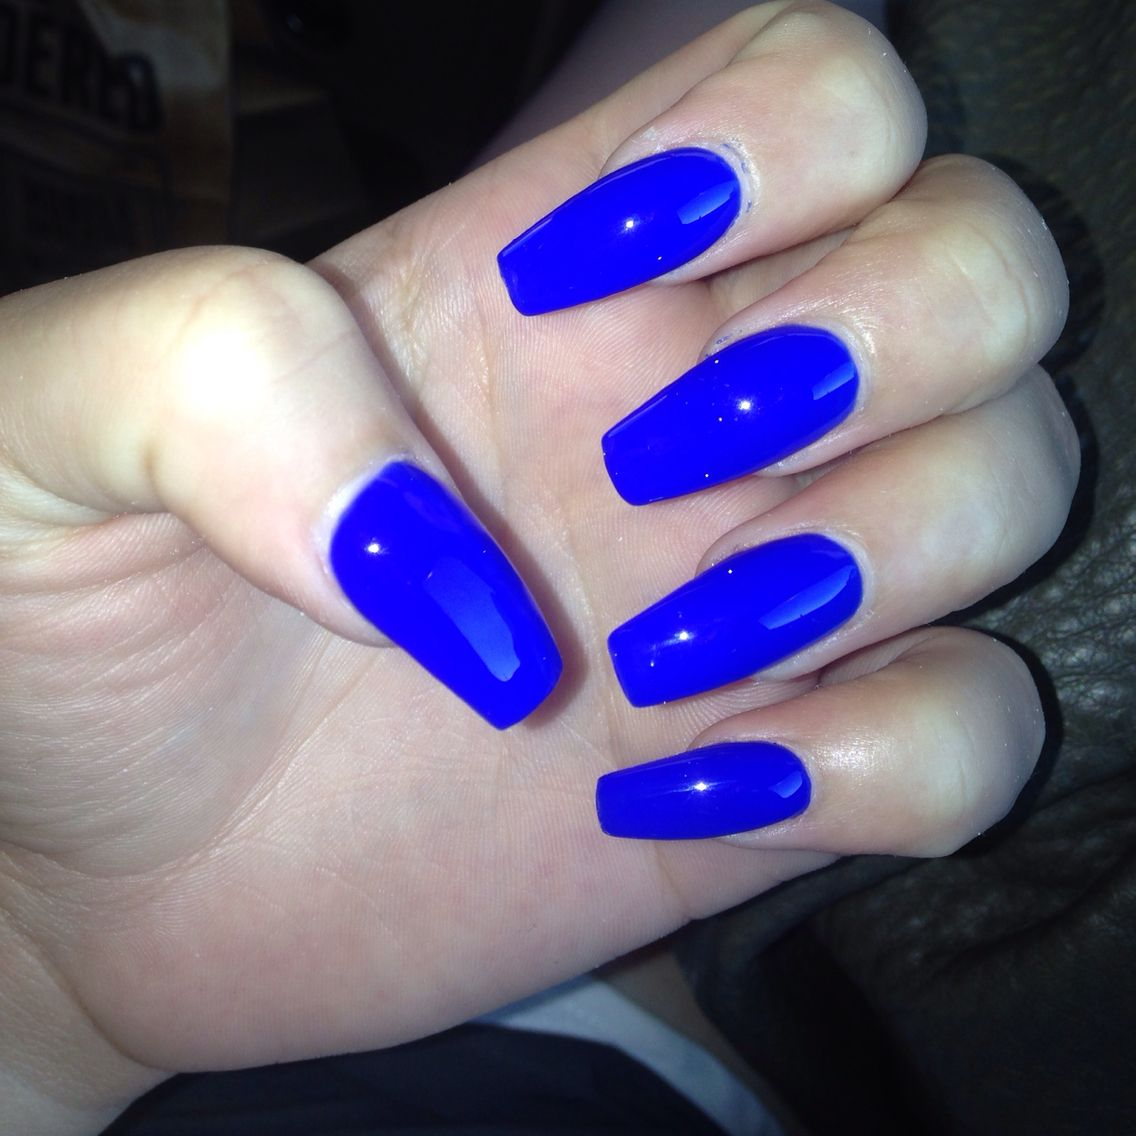 2019 year lifestyle- Blue royal pointy nails